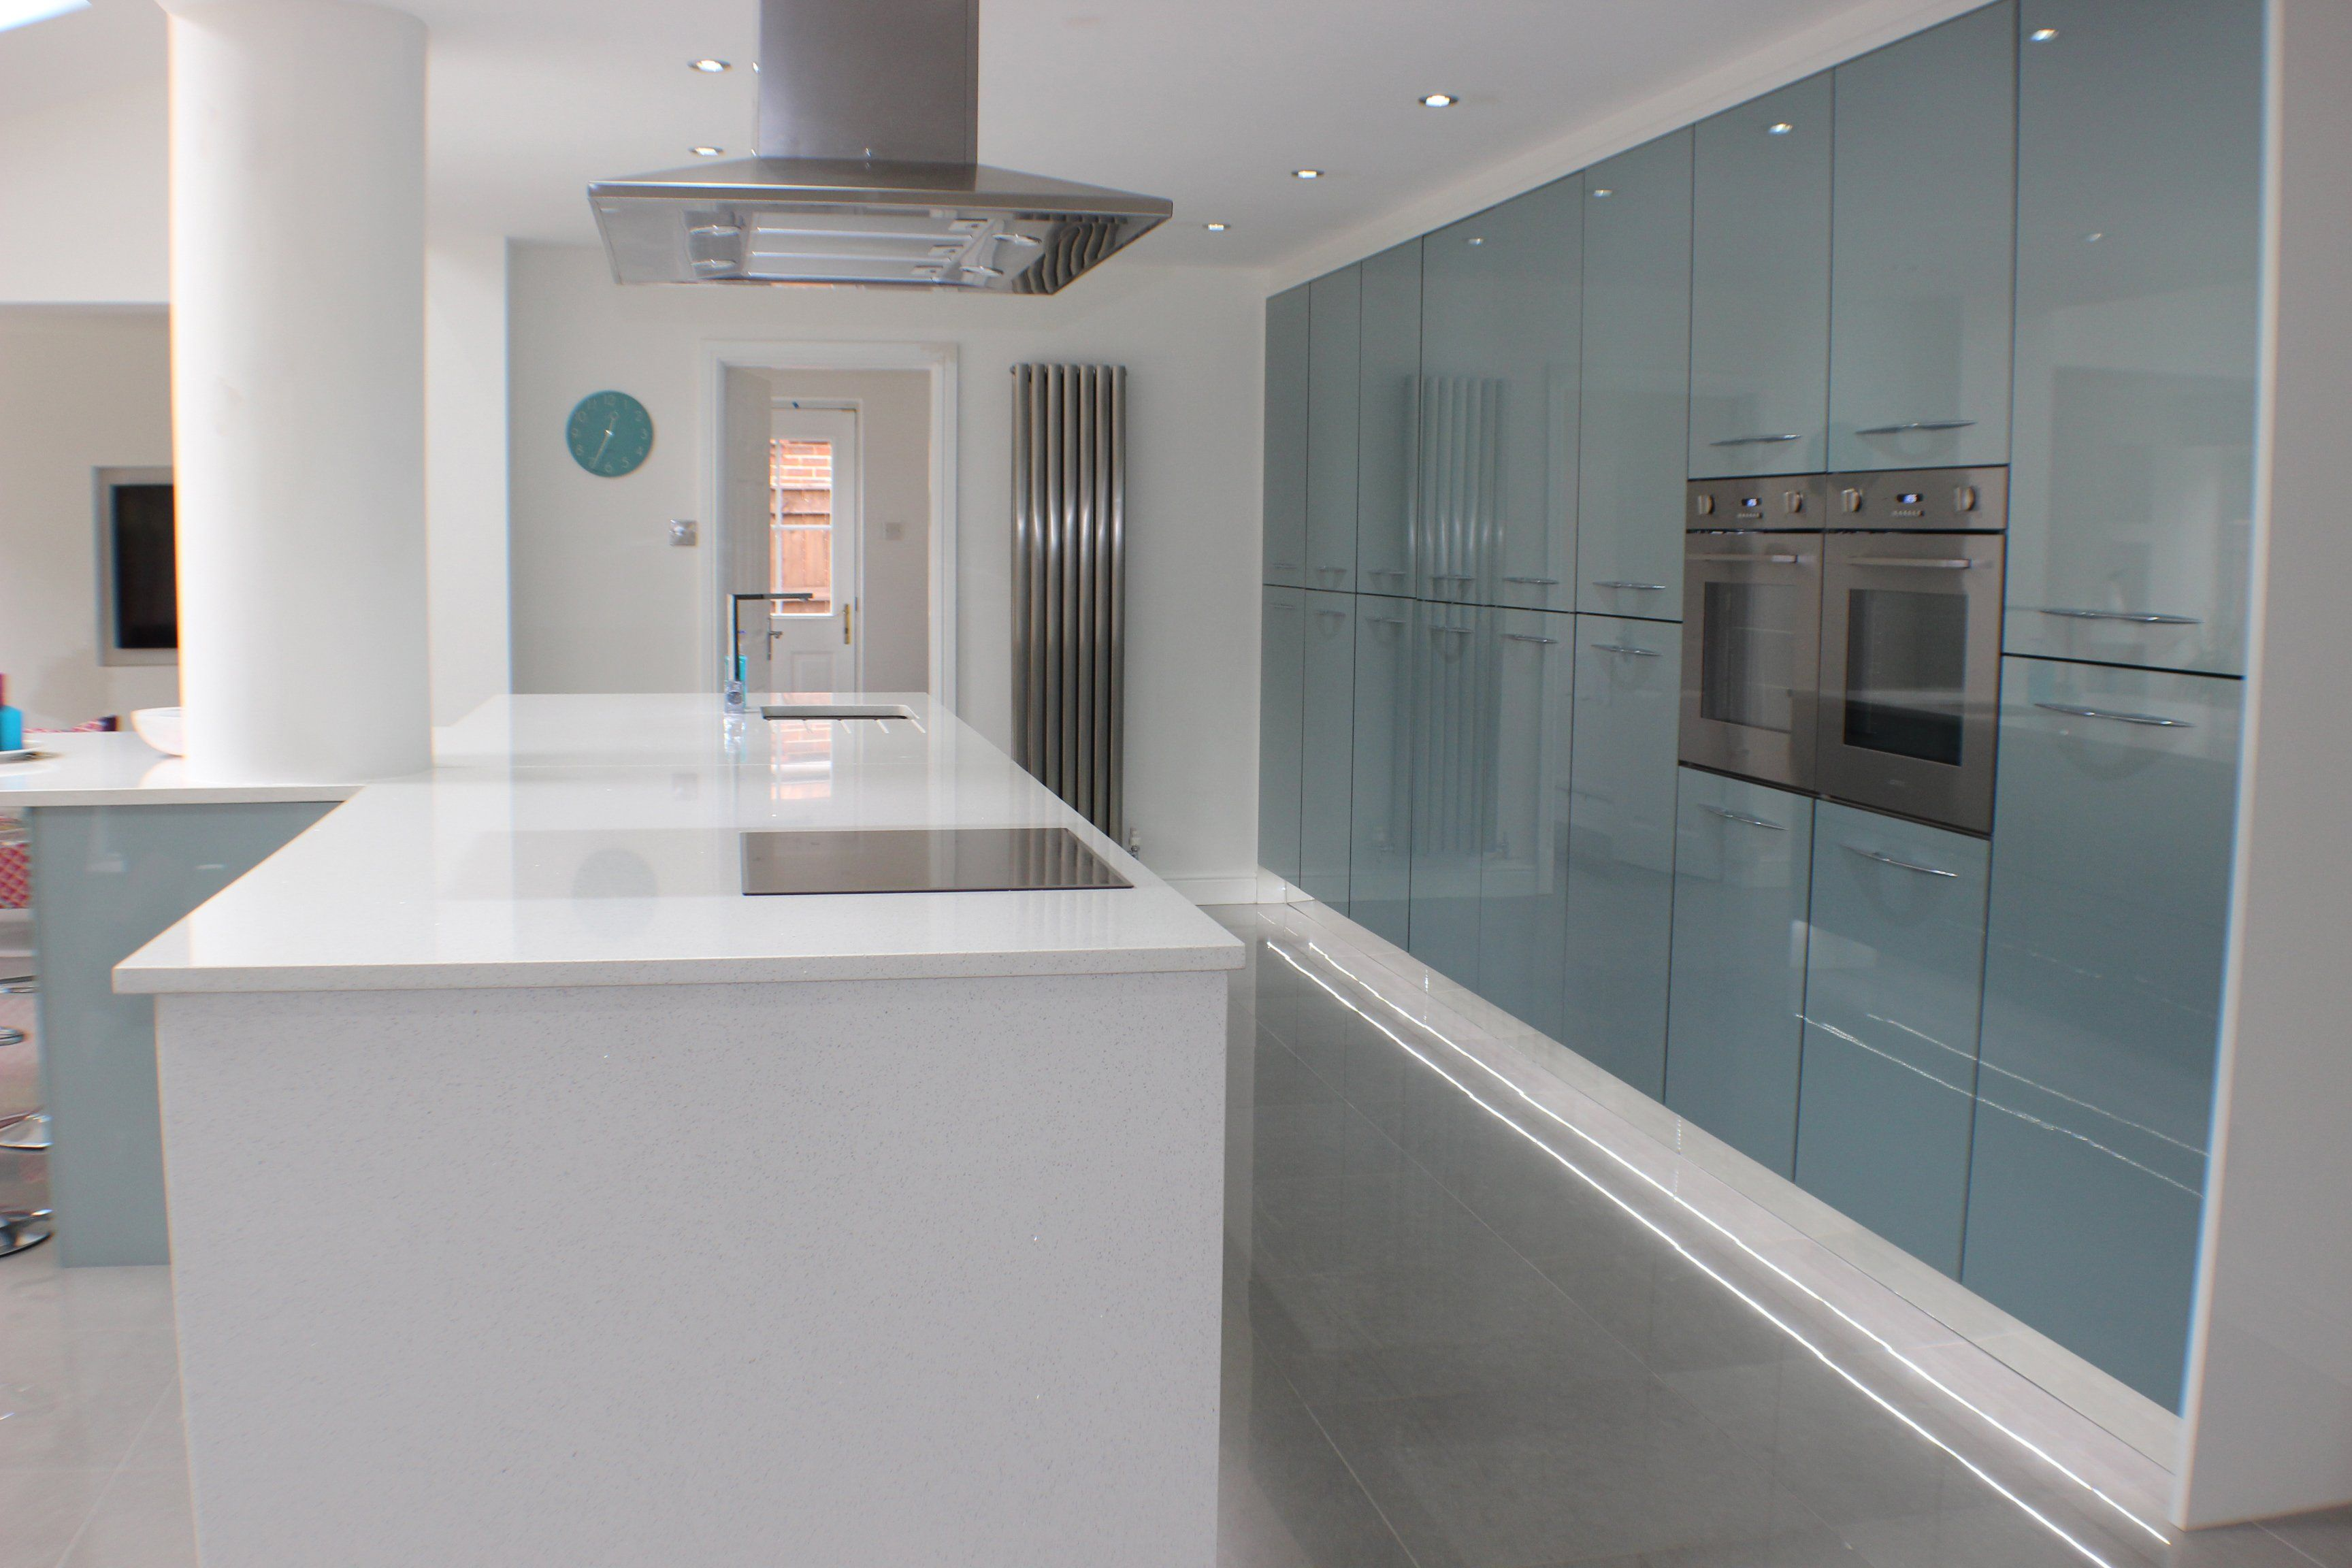 Peachy High Gloss Acrylic Astral Blue Duck Egg Blue John Beutiful Home Inspiration Xortanetmahrainfo